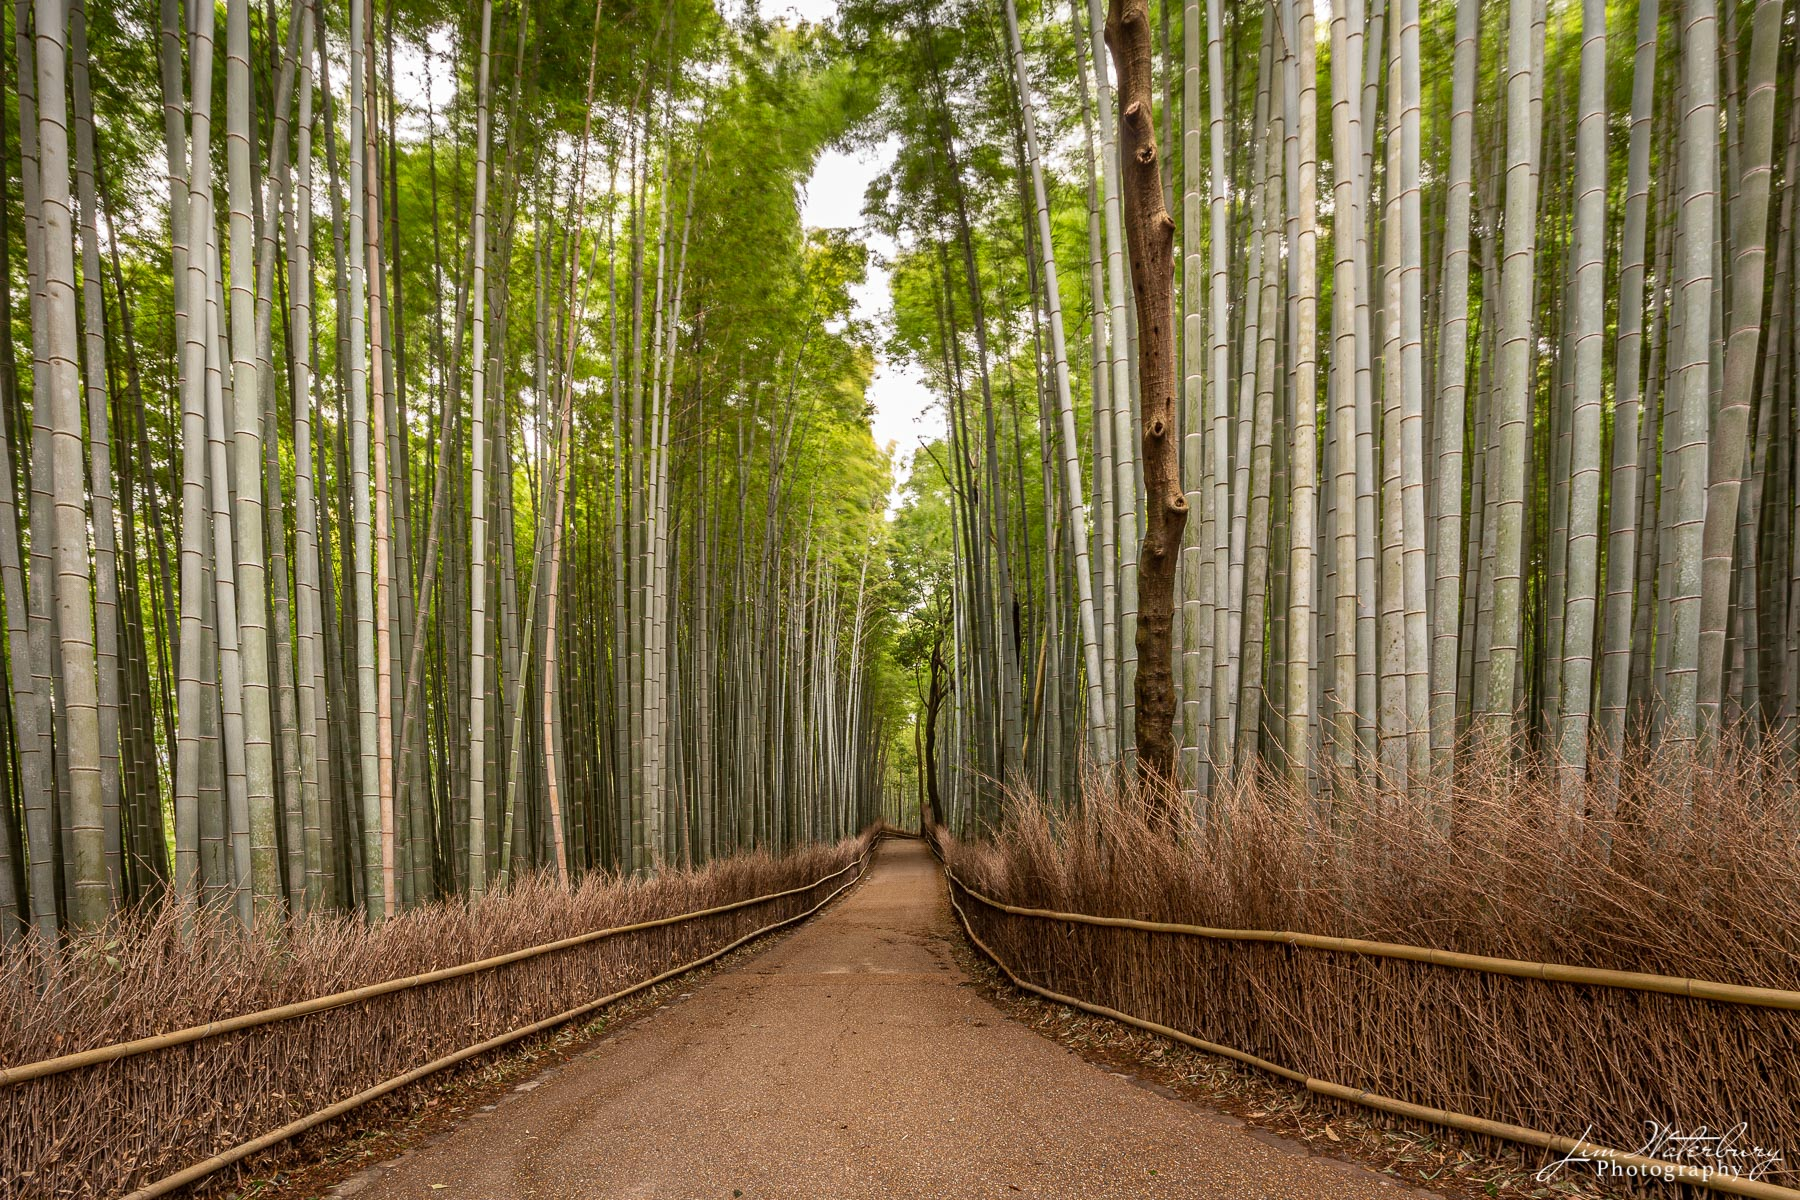 Bamboo trees sway in the wind of the early morning at the Sagano bamboo grove in Arashiyama, west of Kyoto, Japan.